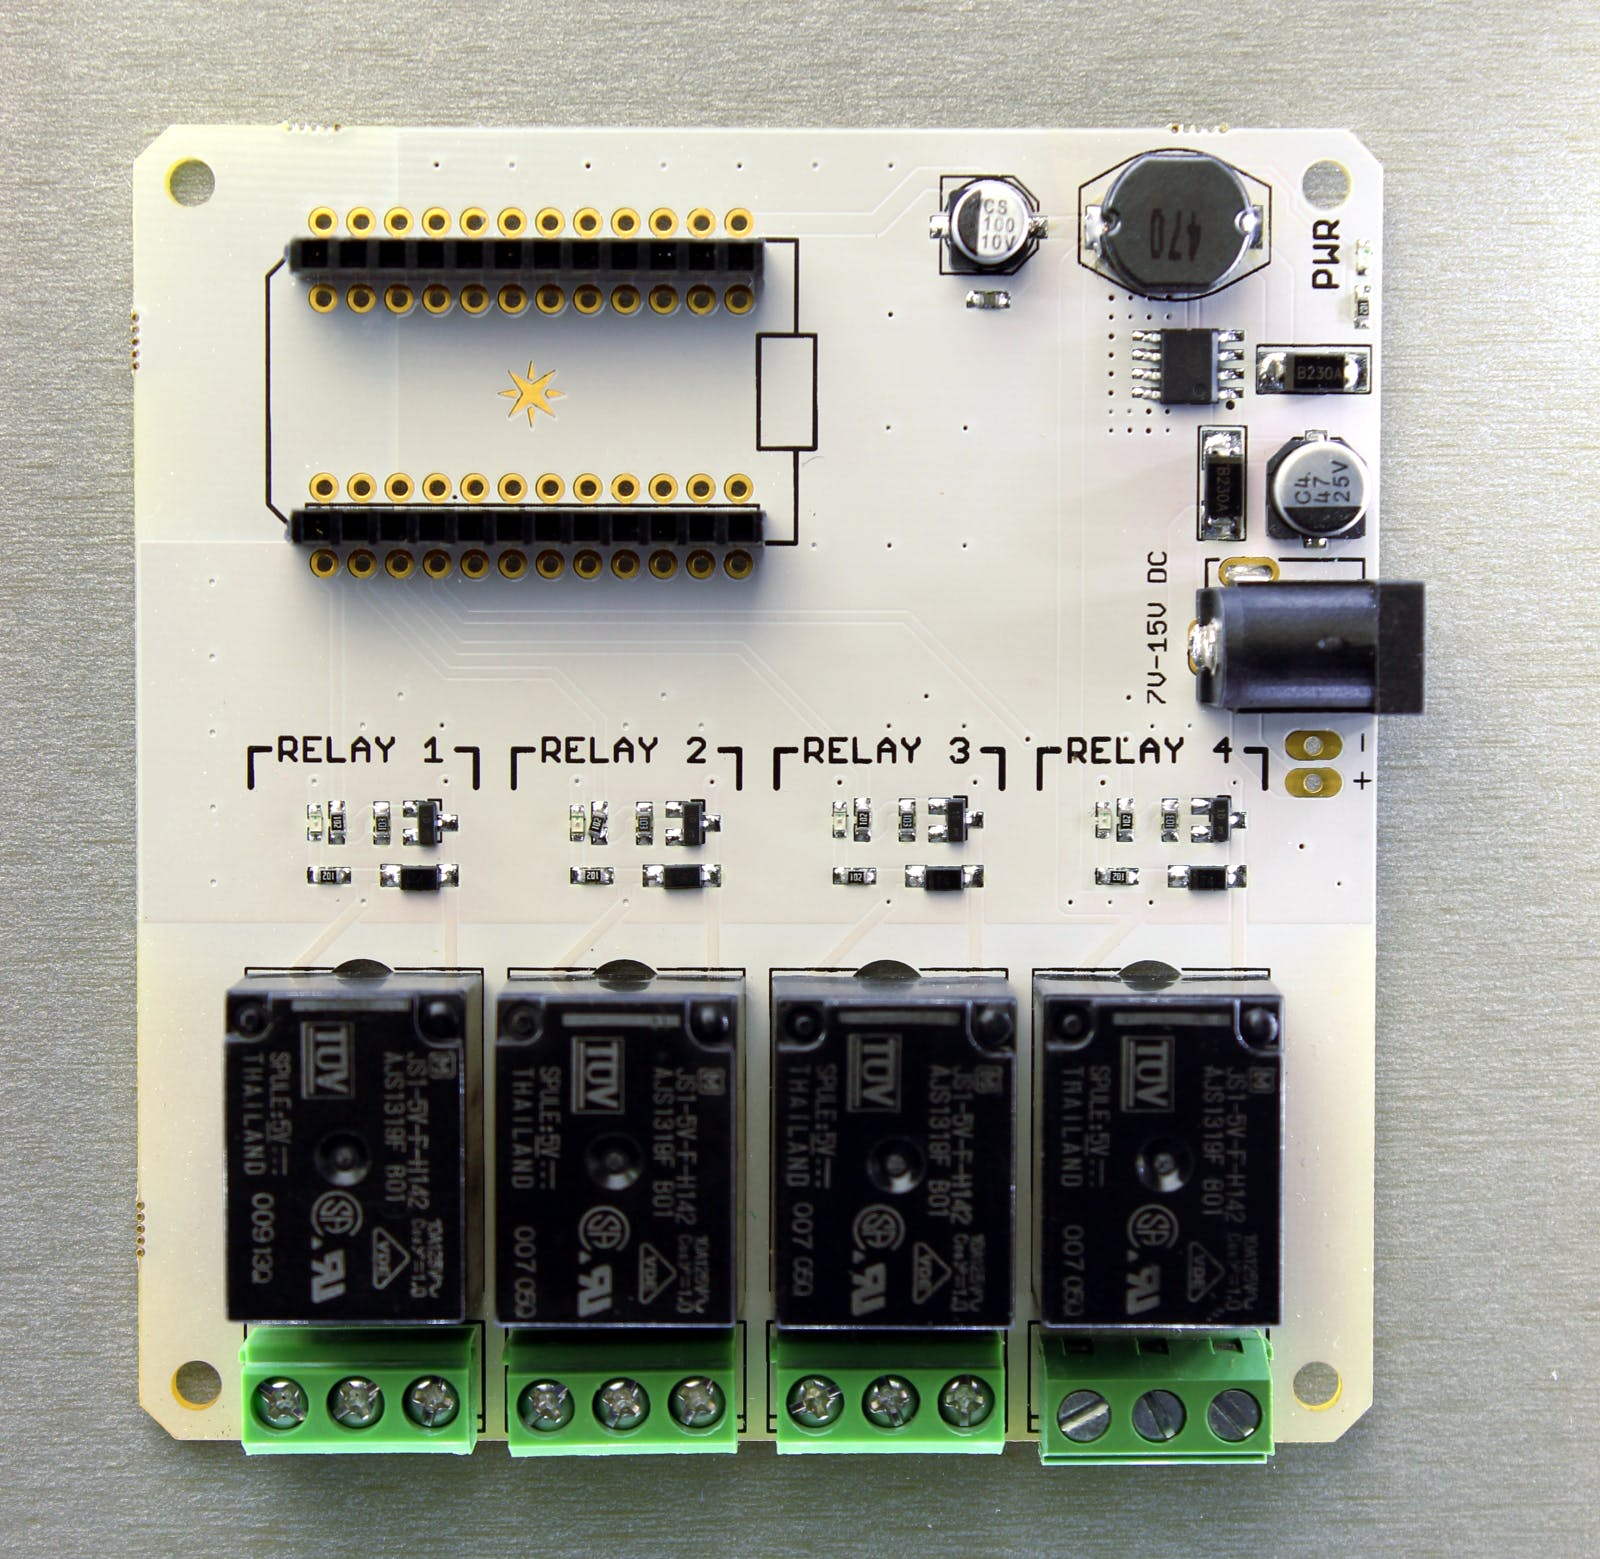 Spark Core Relay Shield - this has been replaced with a newer version but still operates the same.